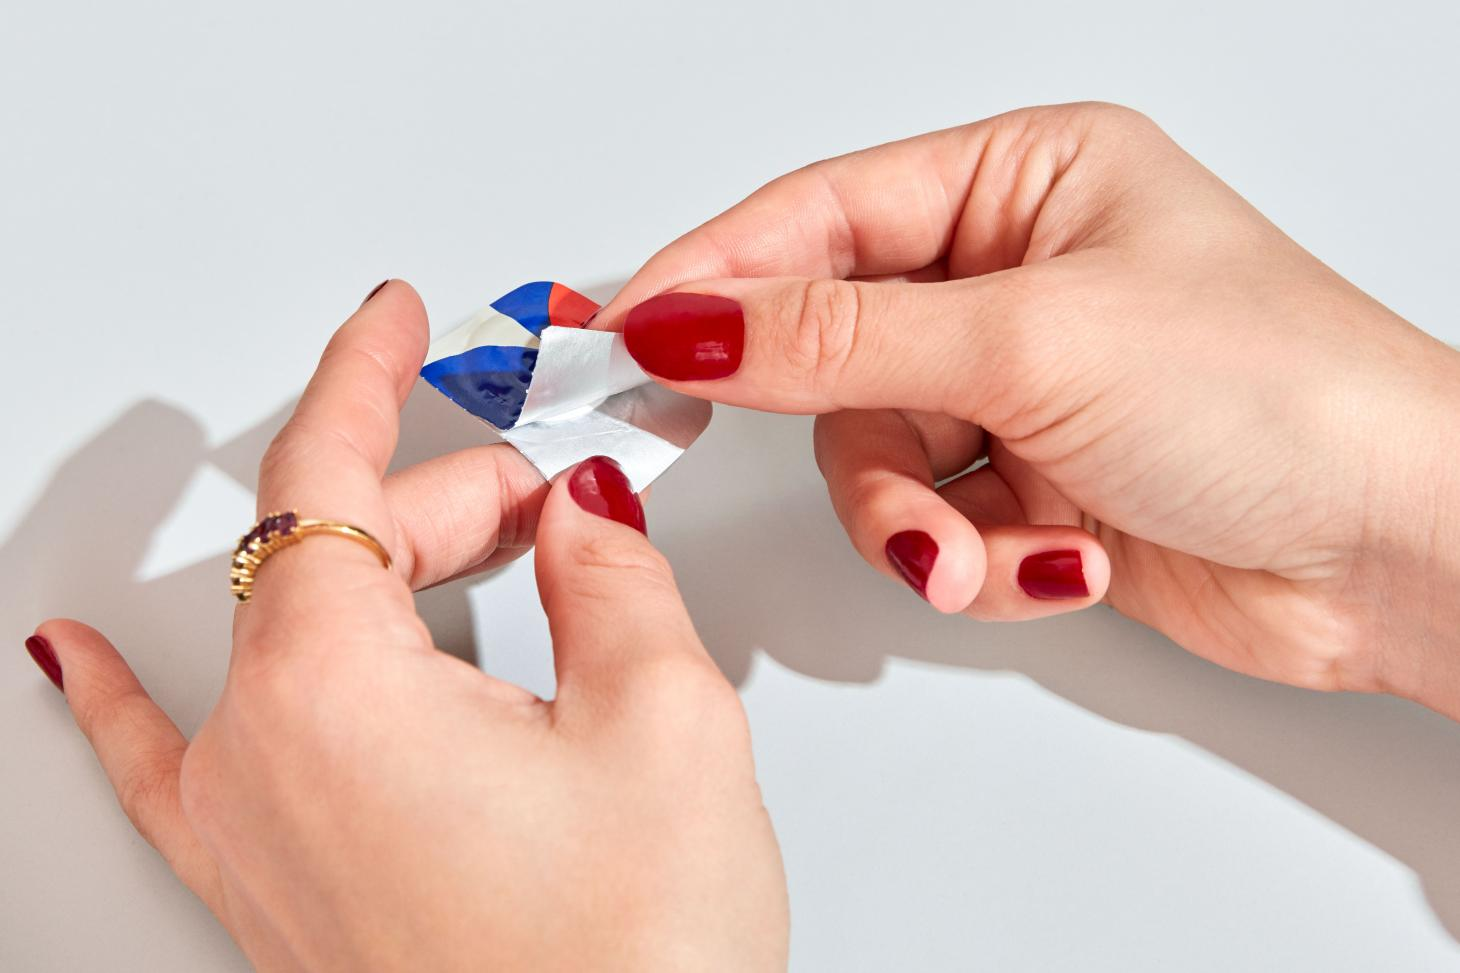 Ace&Tate's contact lenses being taken out of multi-coloured package